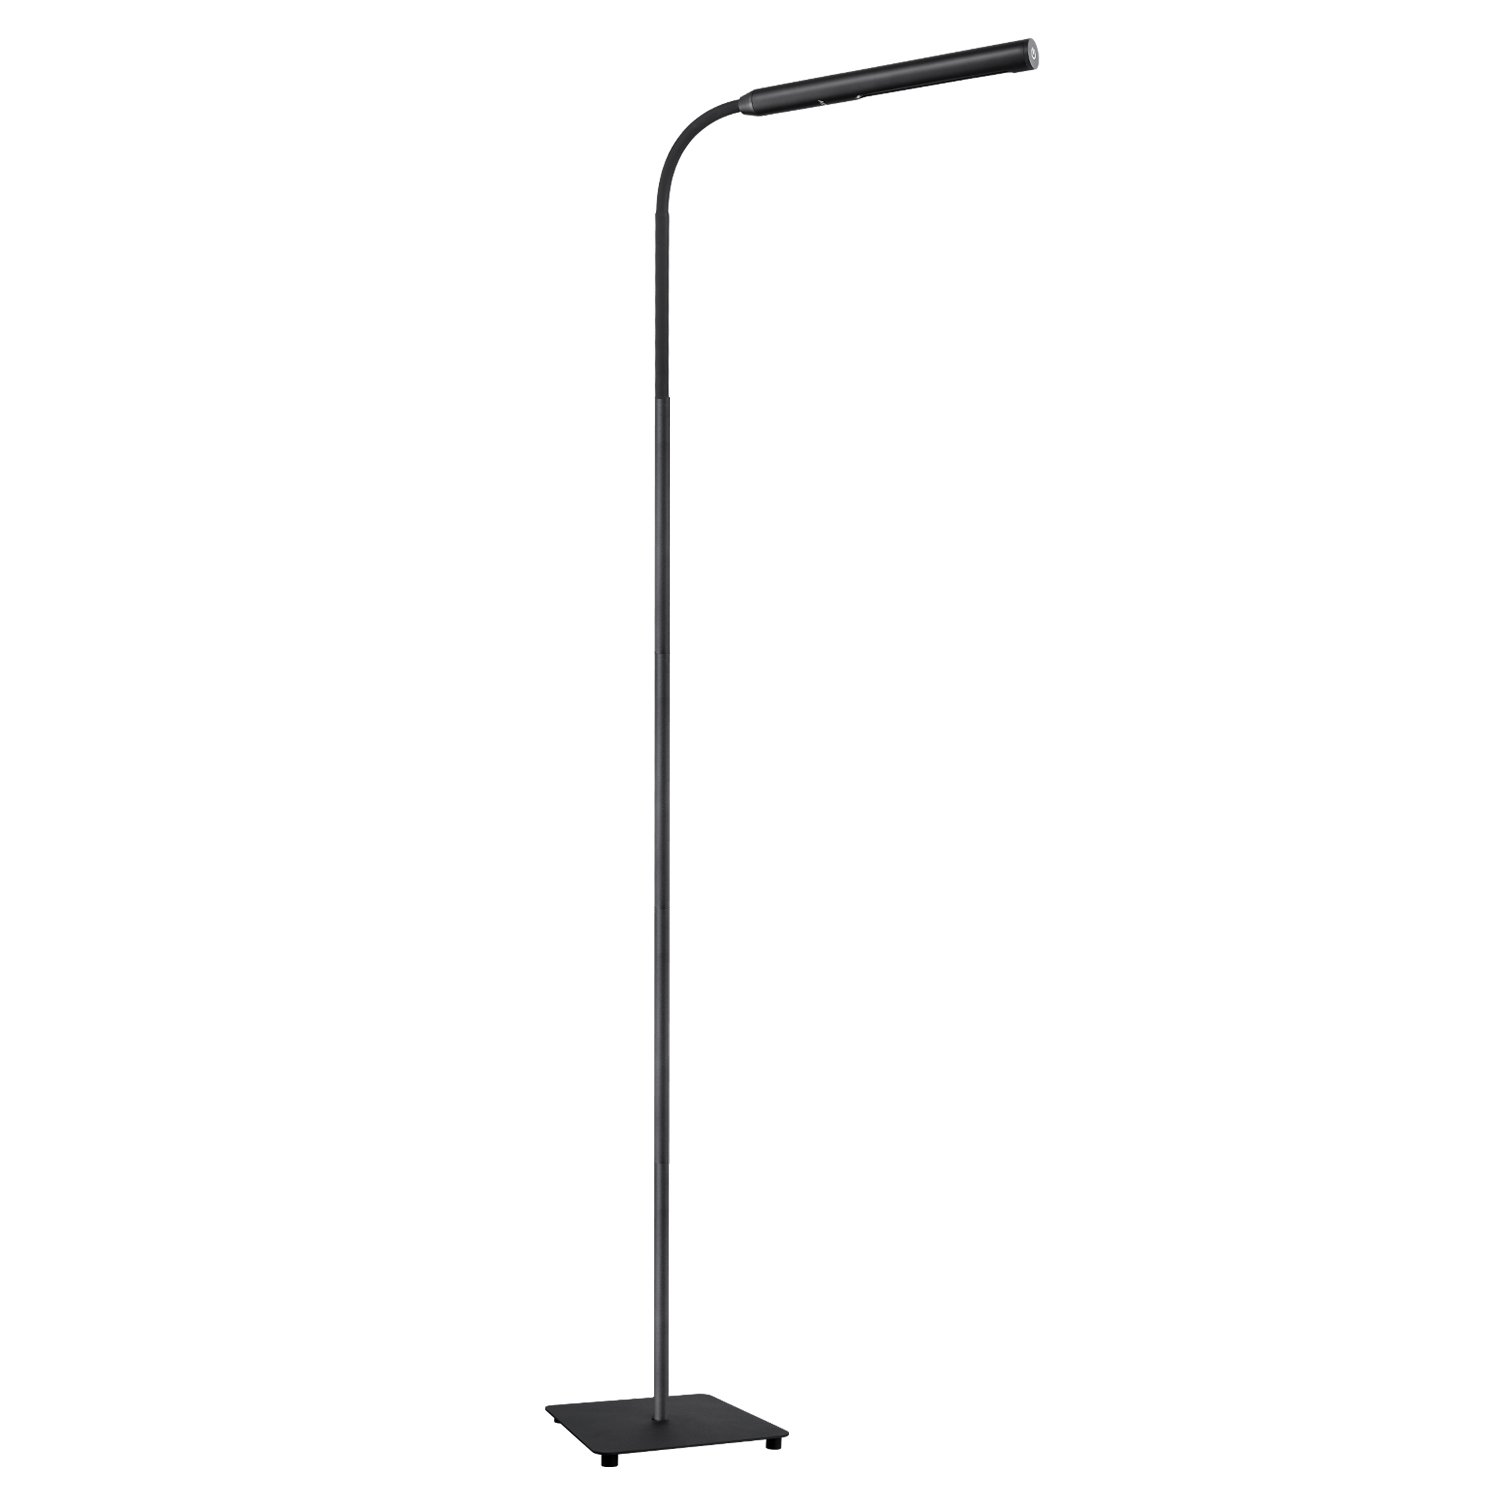 AUKEY LED Floor Lamp, Eye-Care Touch Lamp with Stepless Dimming and Flexible Gooseneck, Natural White Lighting for Relaxing, Reading and Craft Work LT-ST33